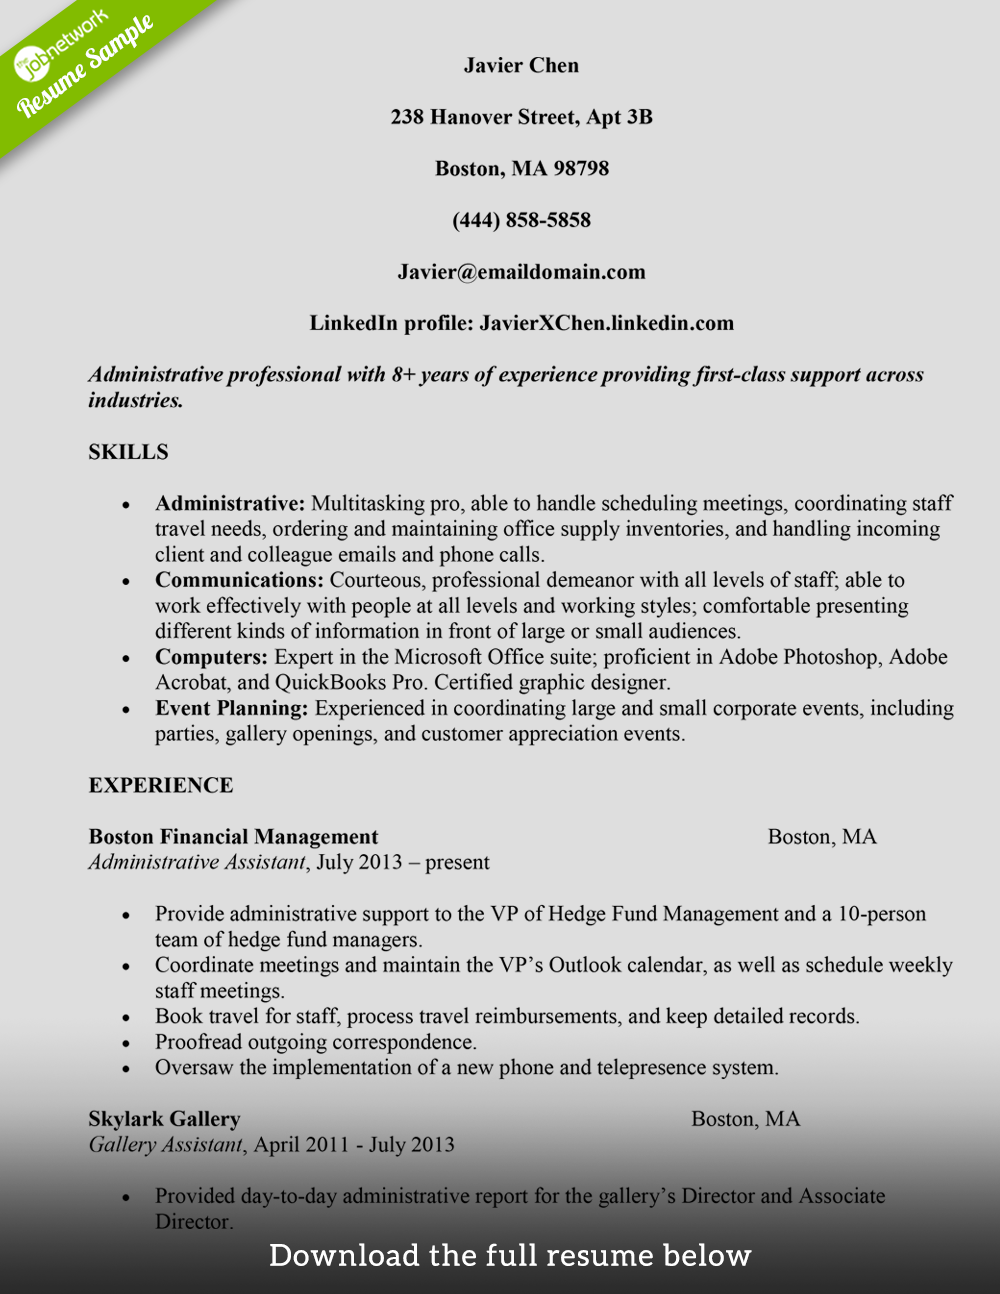 Administrative Assistant Resume Javier Chen  Examples Of Administrative Assistant Resumes